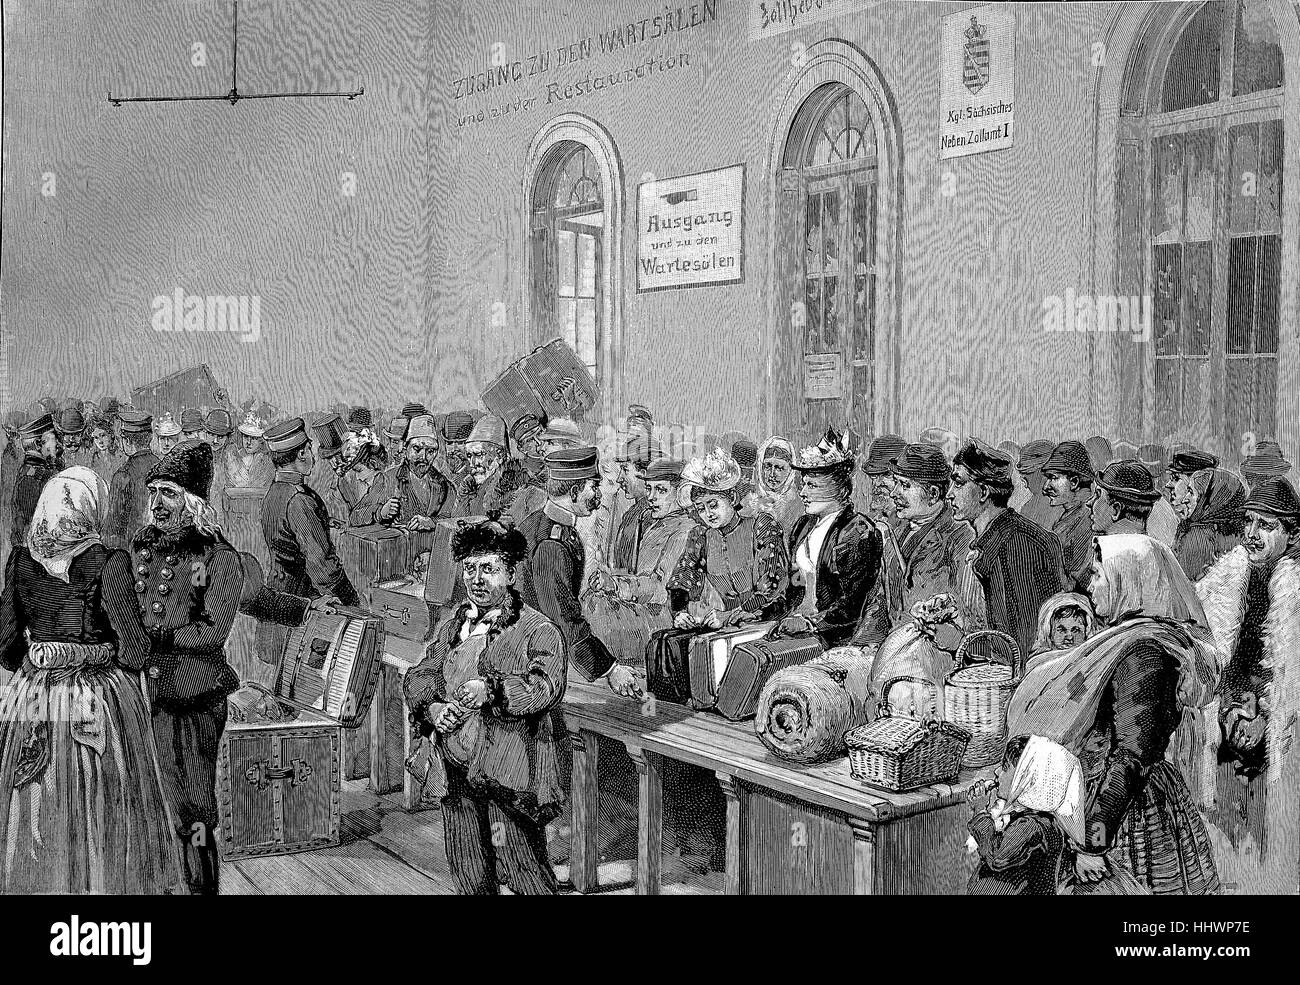 Customs station at the Bohemian-Saxon border in Bodenbach, Bohemia, Czech Republic, original drawing by E. Limmer, - Stock Image